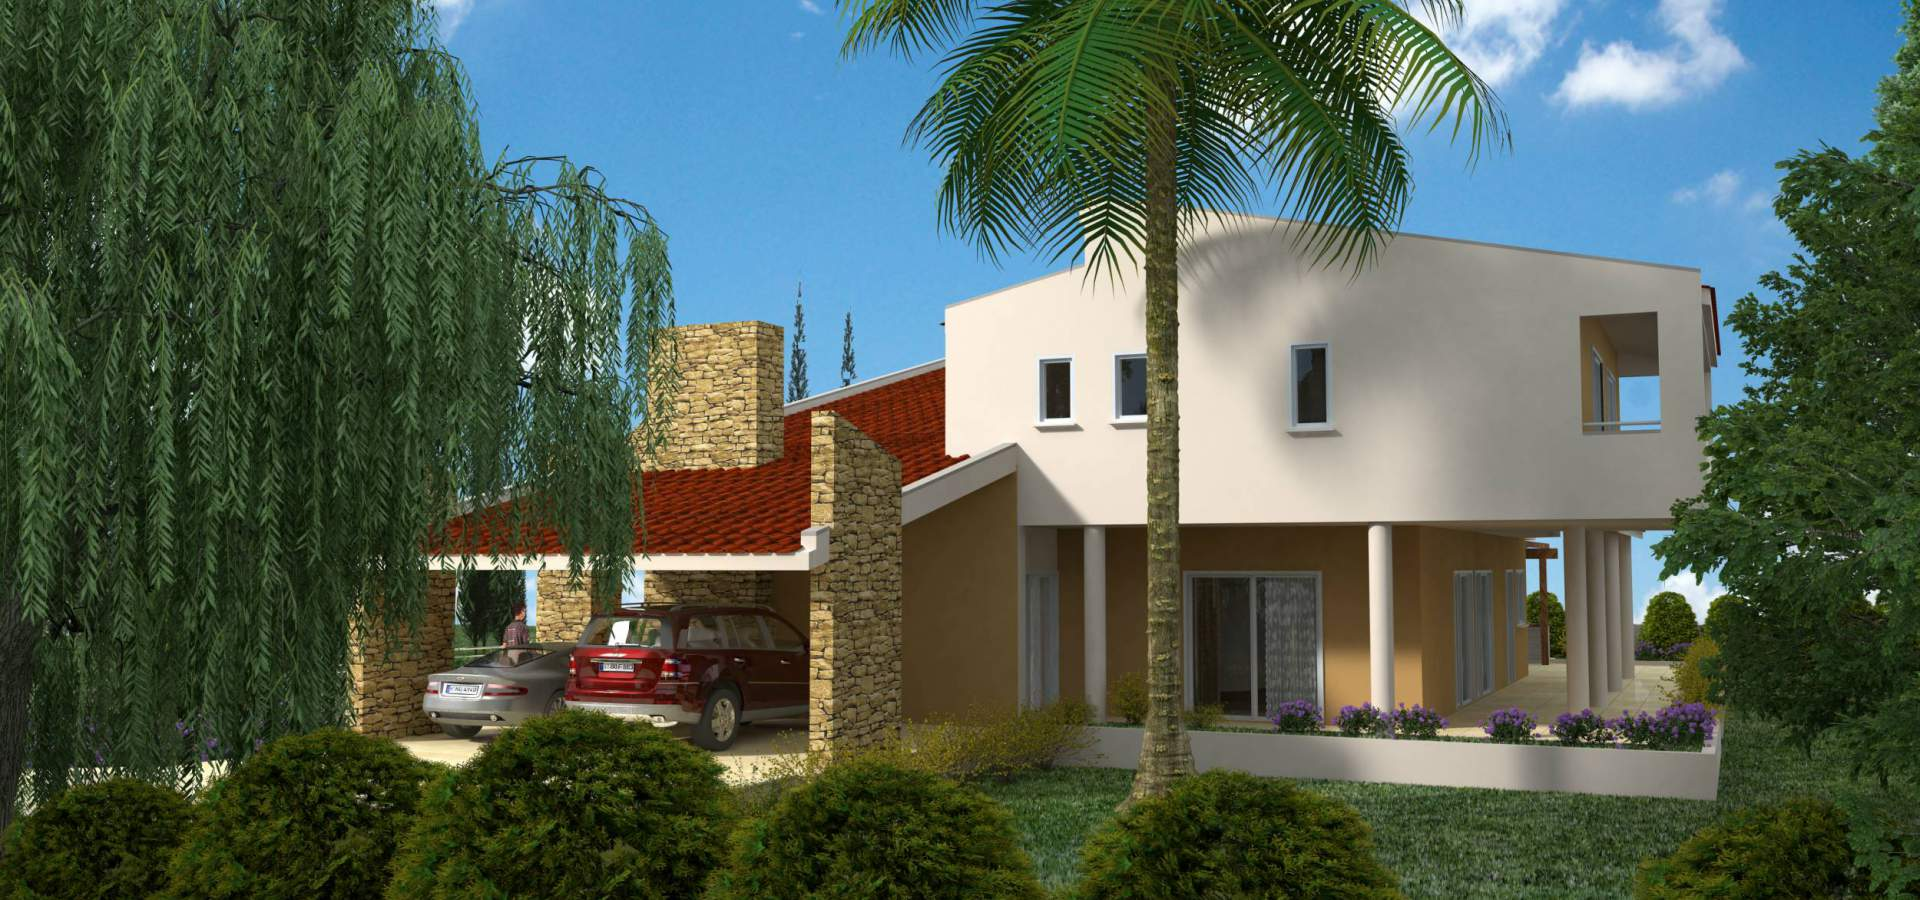 Konia Luxury Houses General View